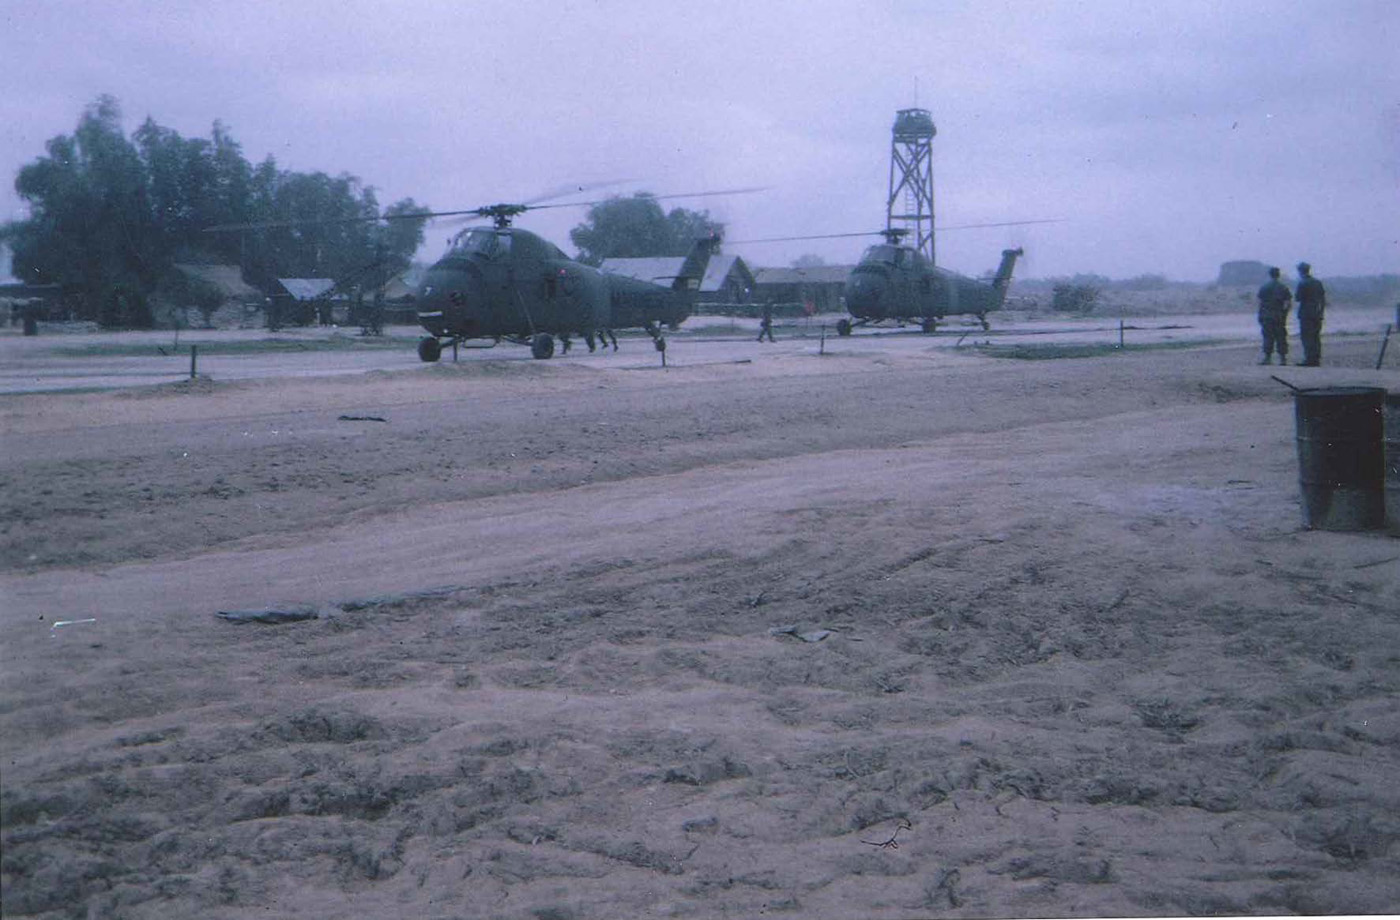 Two CH34 Sikorsky choppers on pad at An Loc – photo taken on day of arrival in November 1967